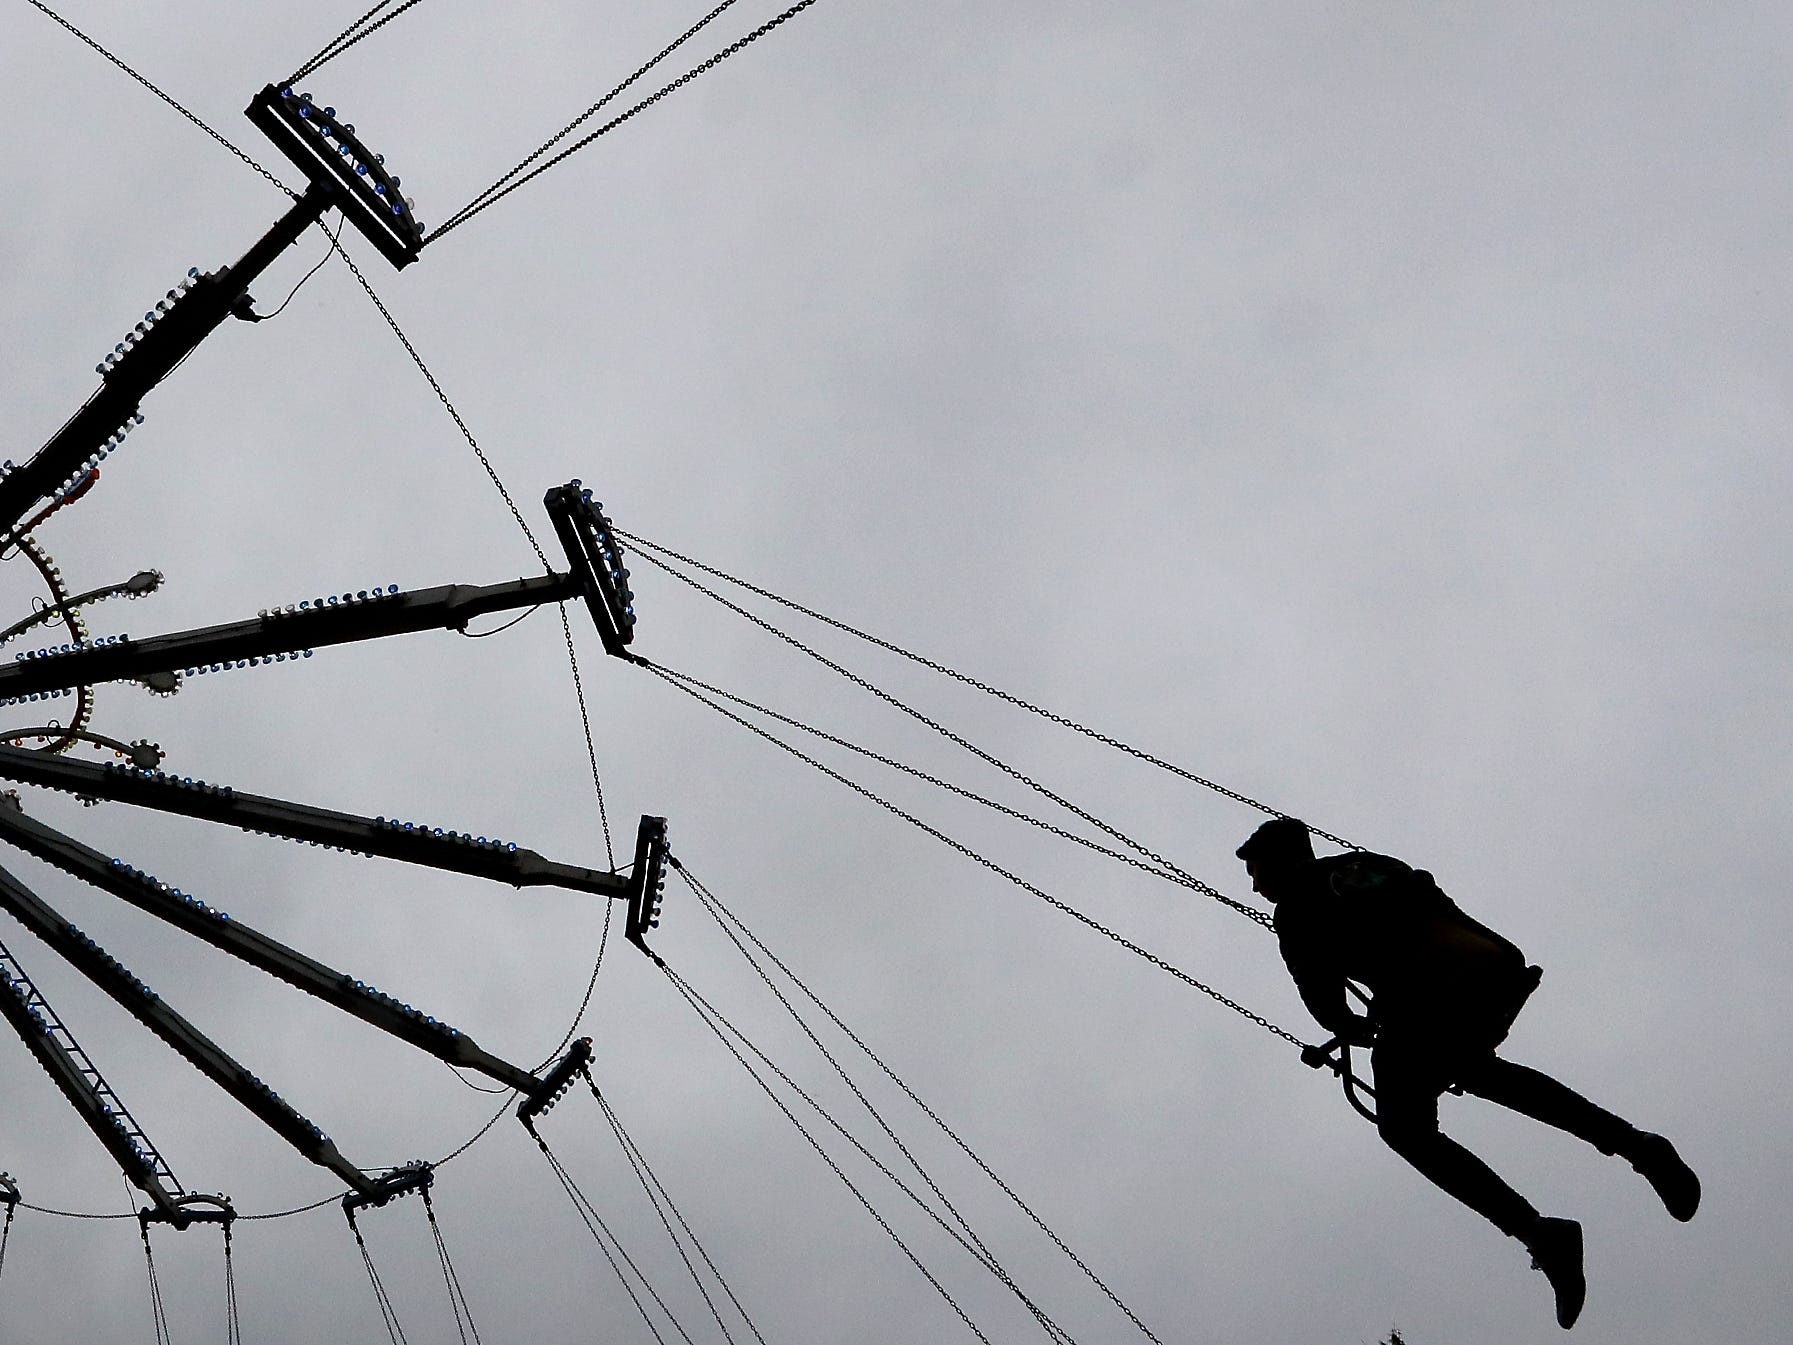 YoYo riders are silhouetted against the cloudy sky during the Kitsap County Fair & Stampede on Saturday, August 25. 2018.